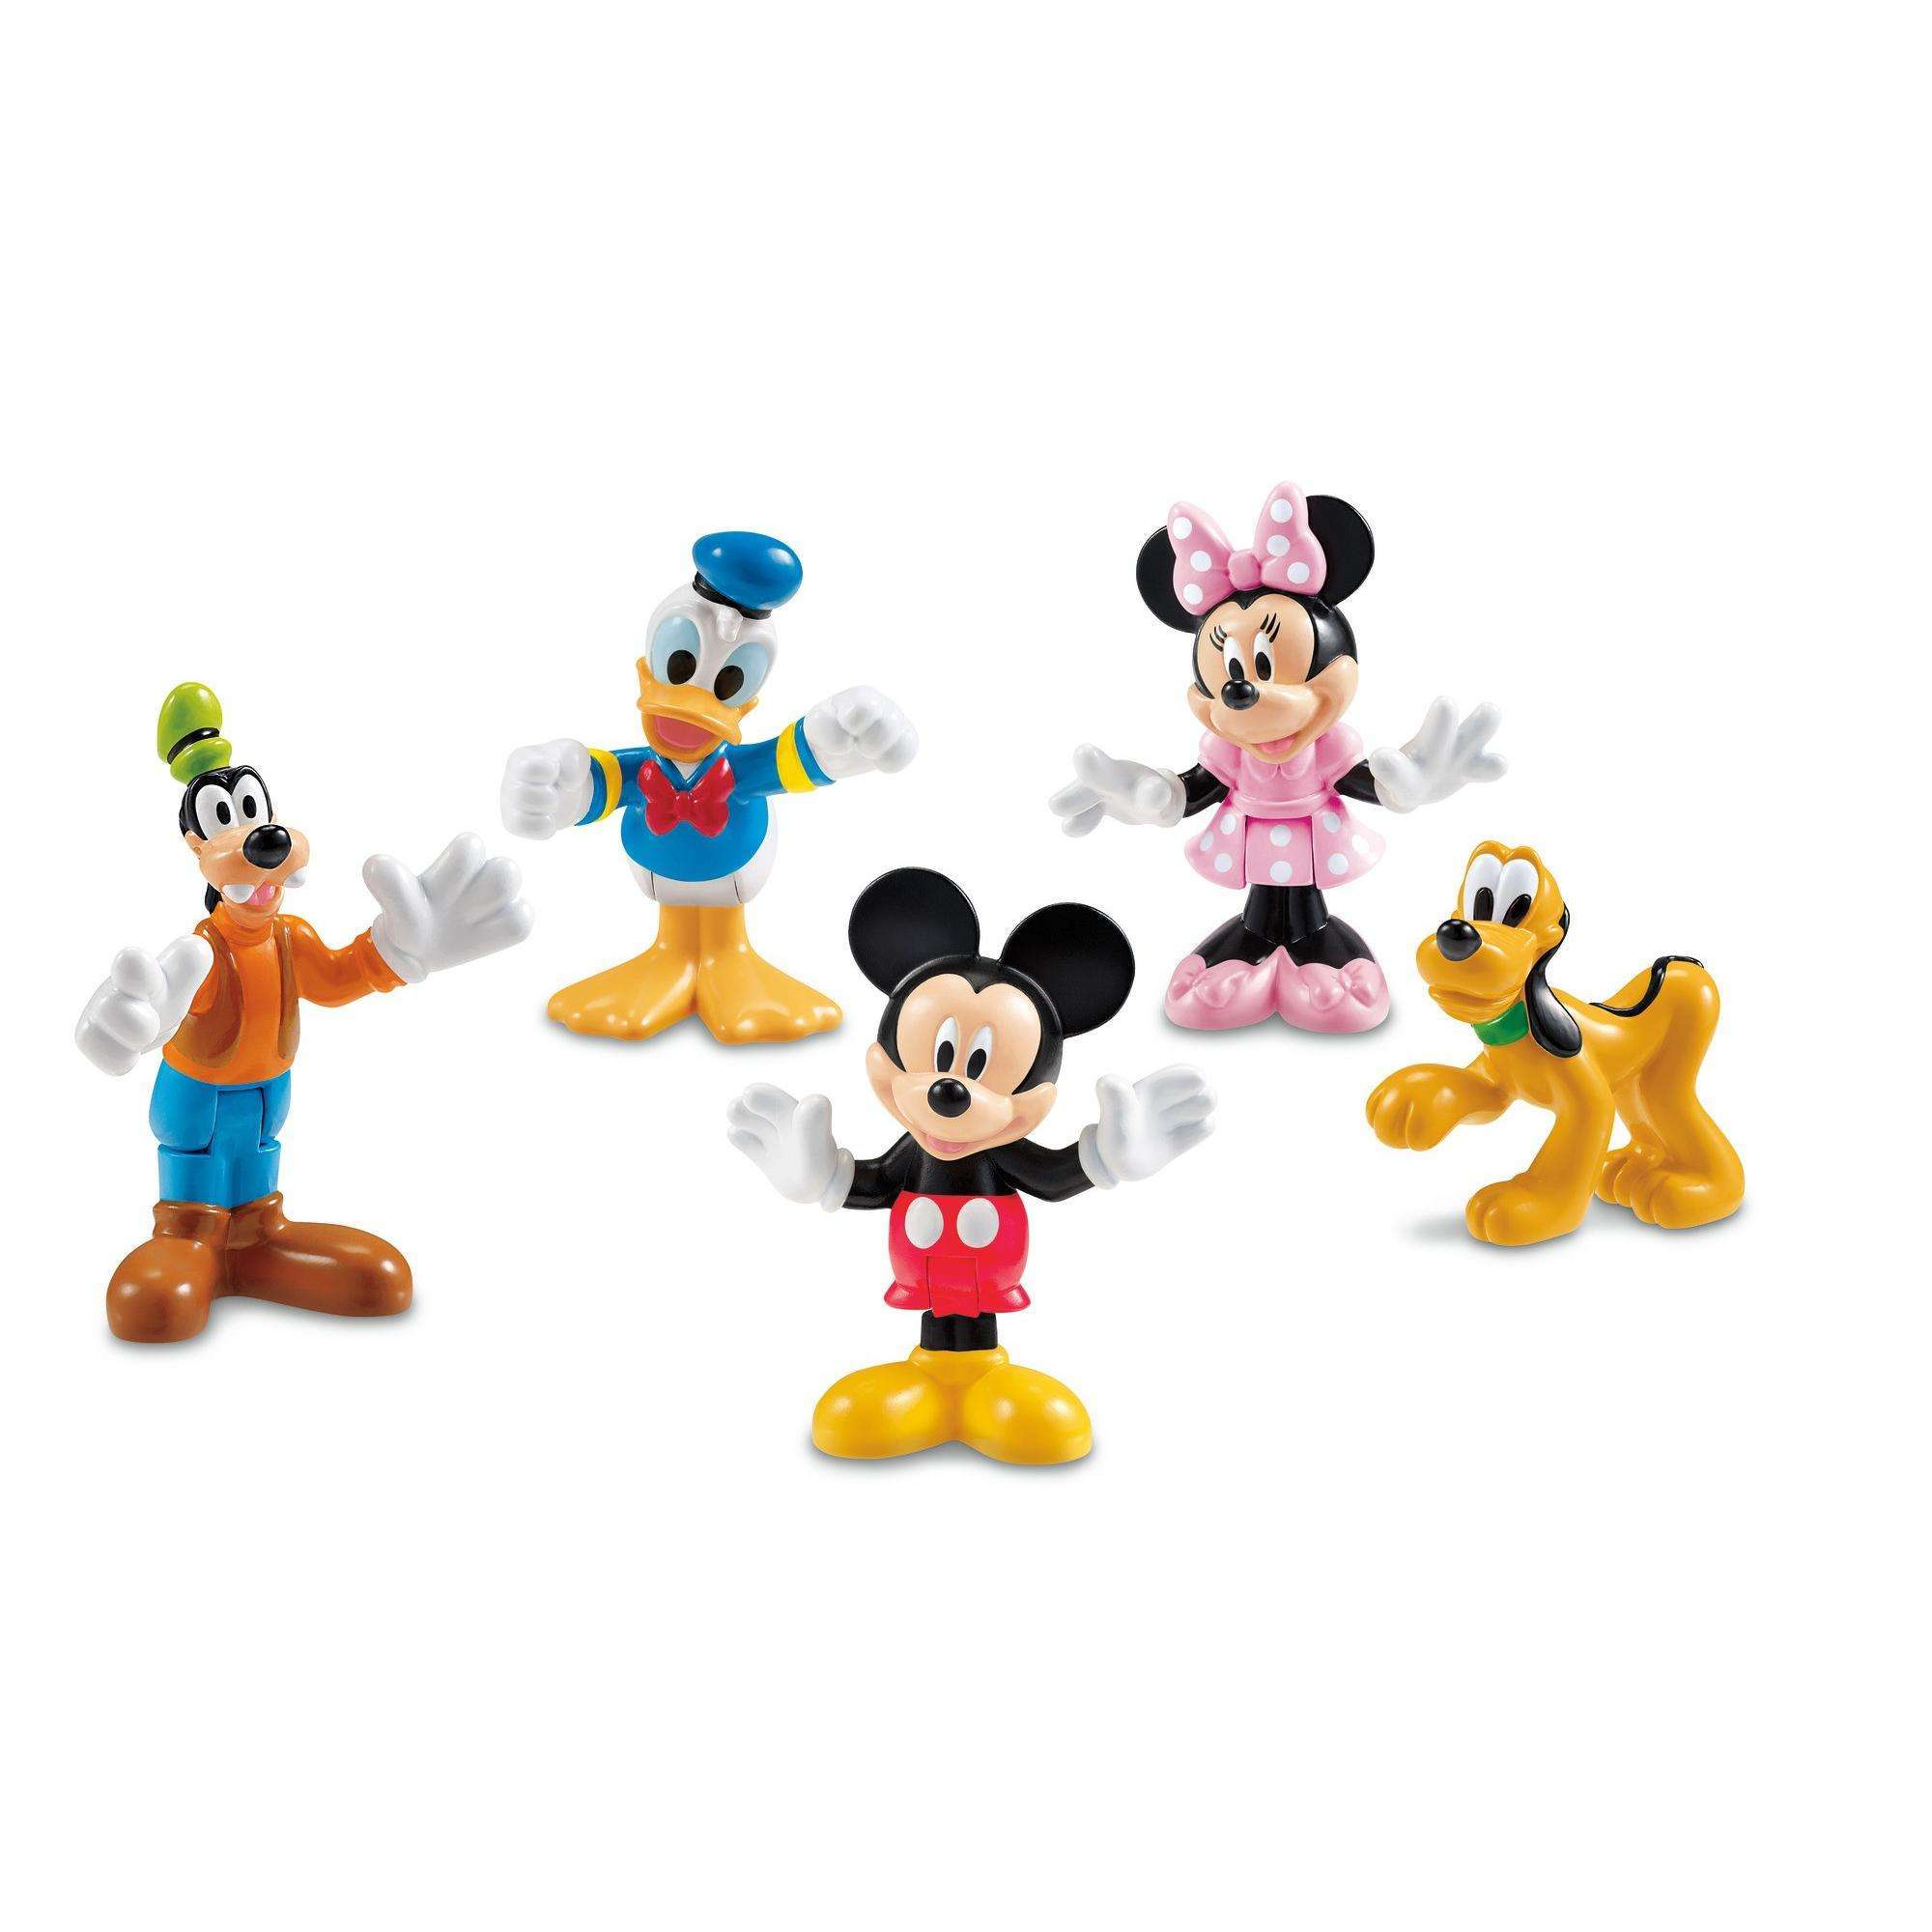 Disney Mickey Mouse Clubhouse Pals Collectible Figures Set